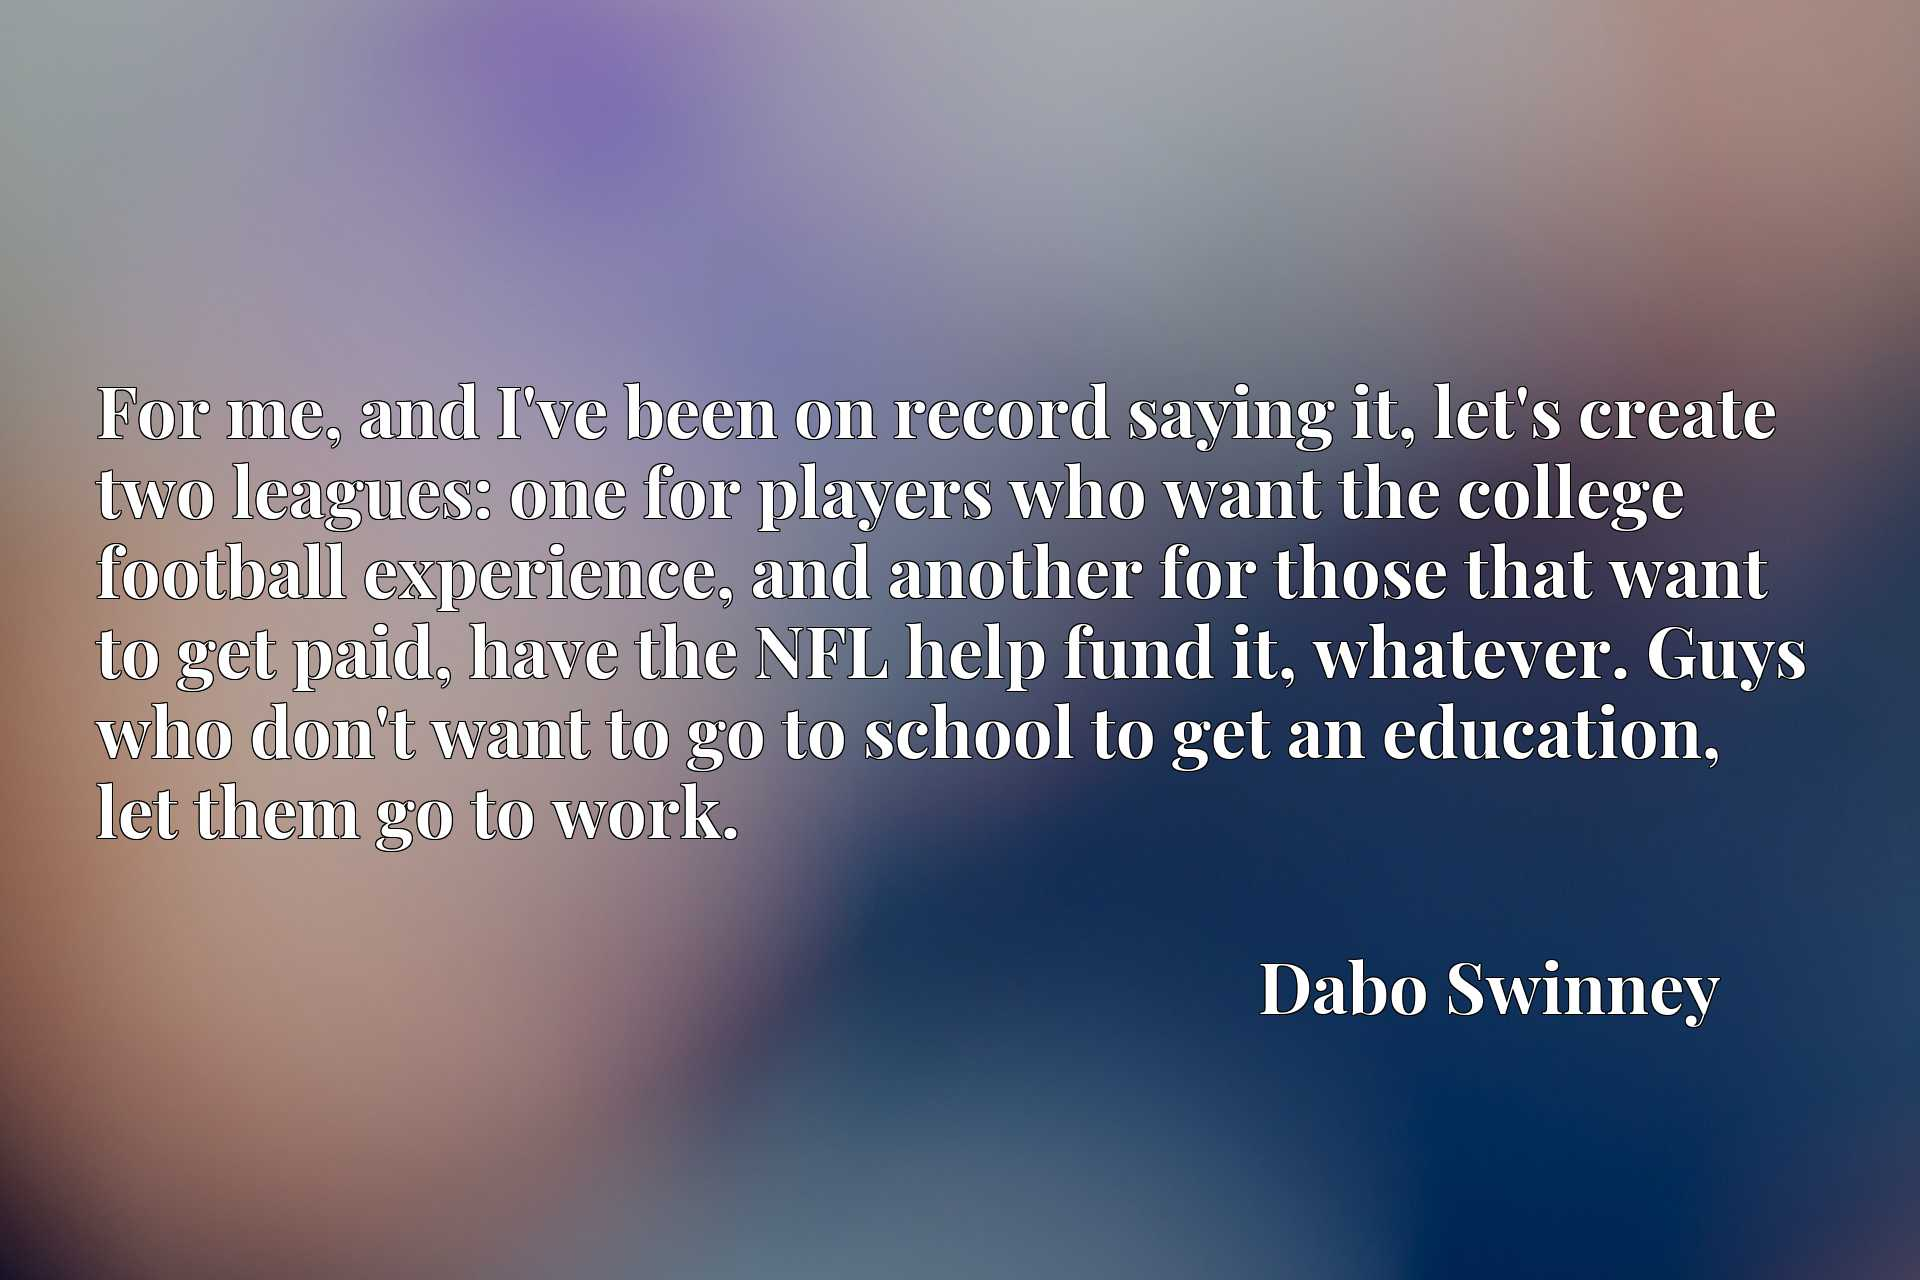 For me, and I've been on record saying it, let's create two leagues: one for players who want the college football experience, and another for those that want to get paid, have the NFL help fund it, whatever. Guys who don't want to go to school to get an education, let them go to work.